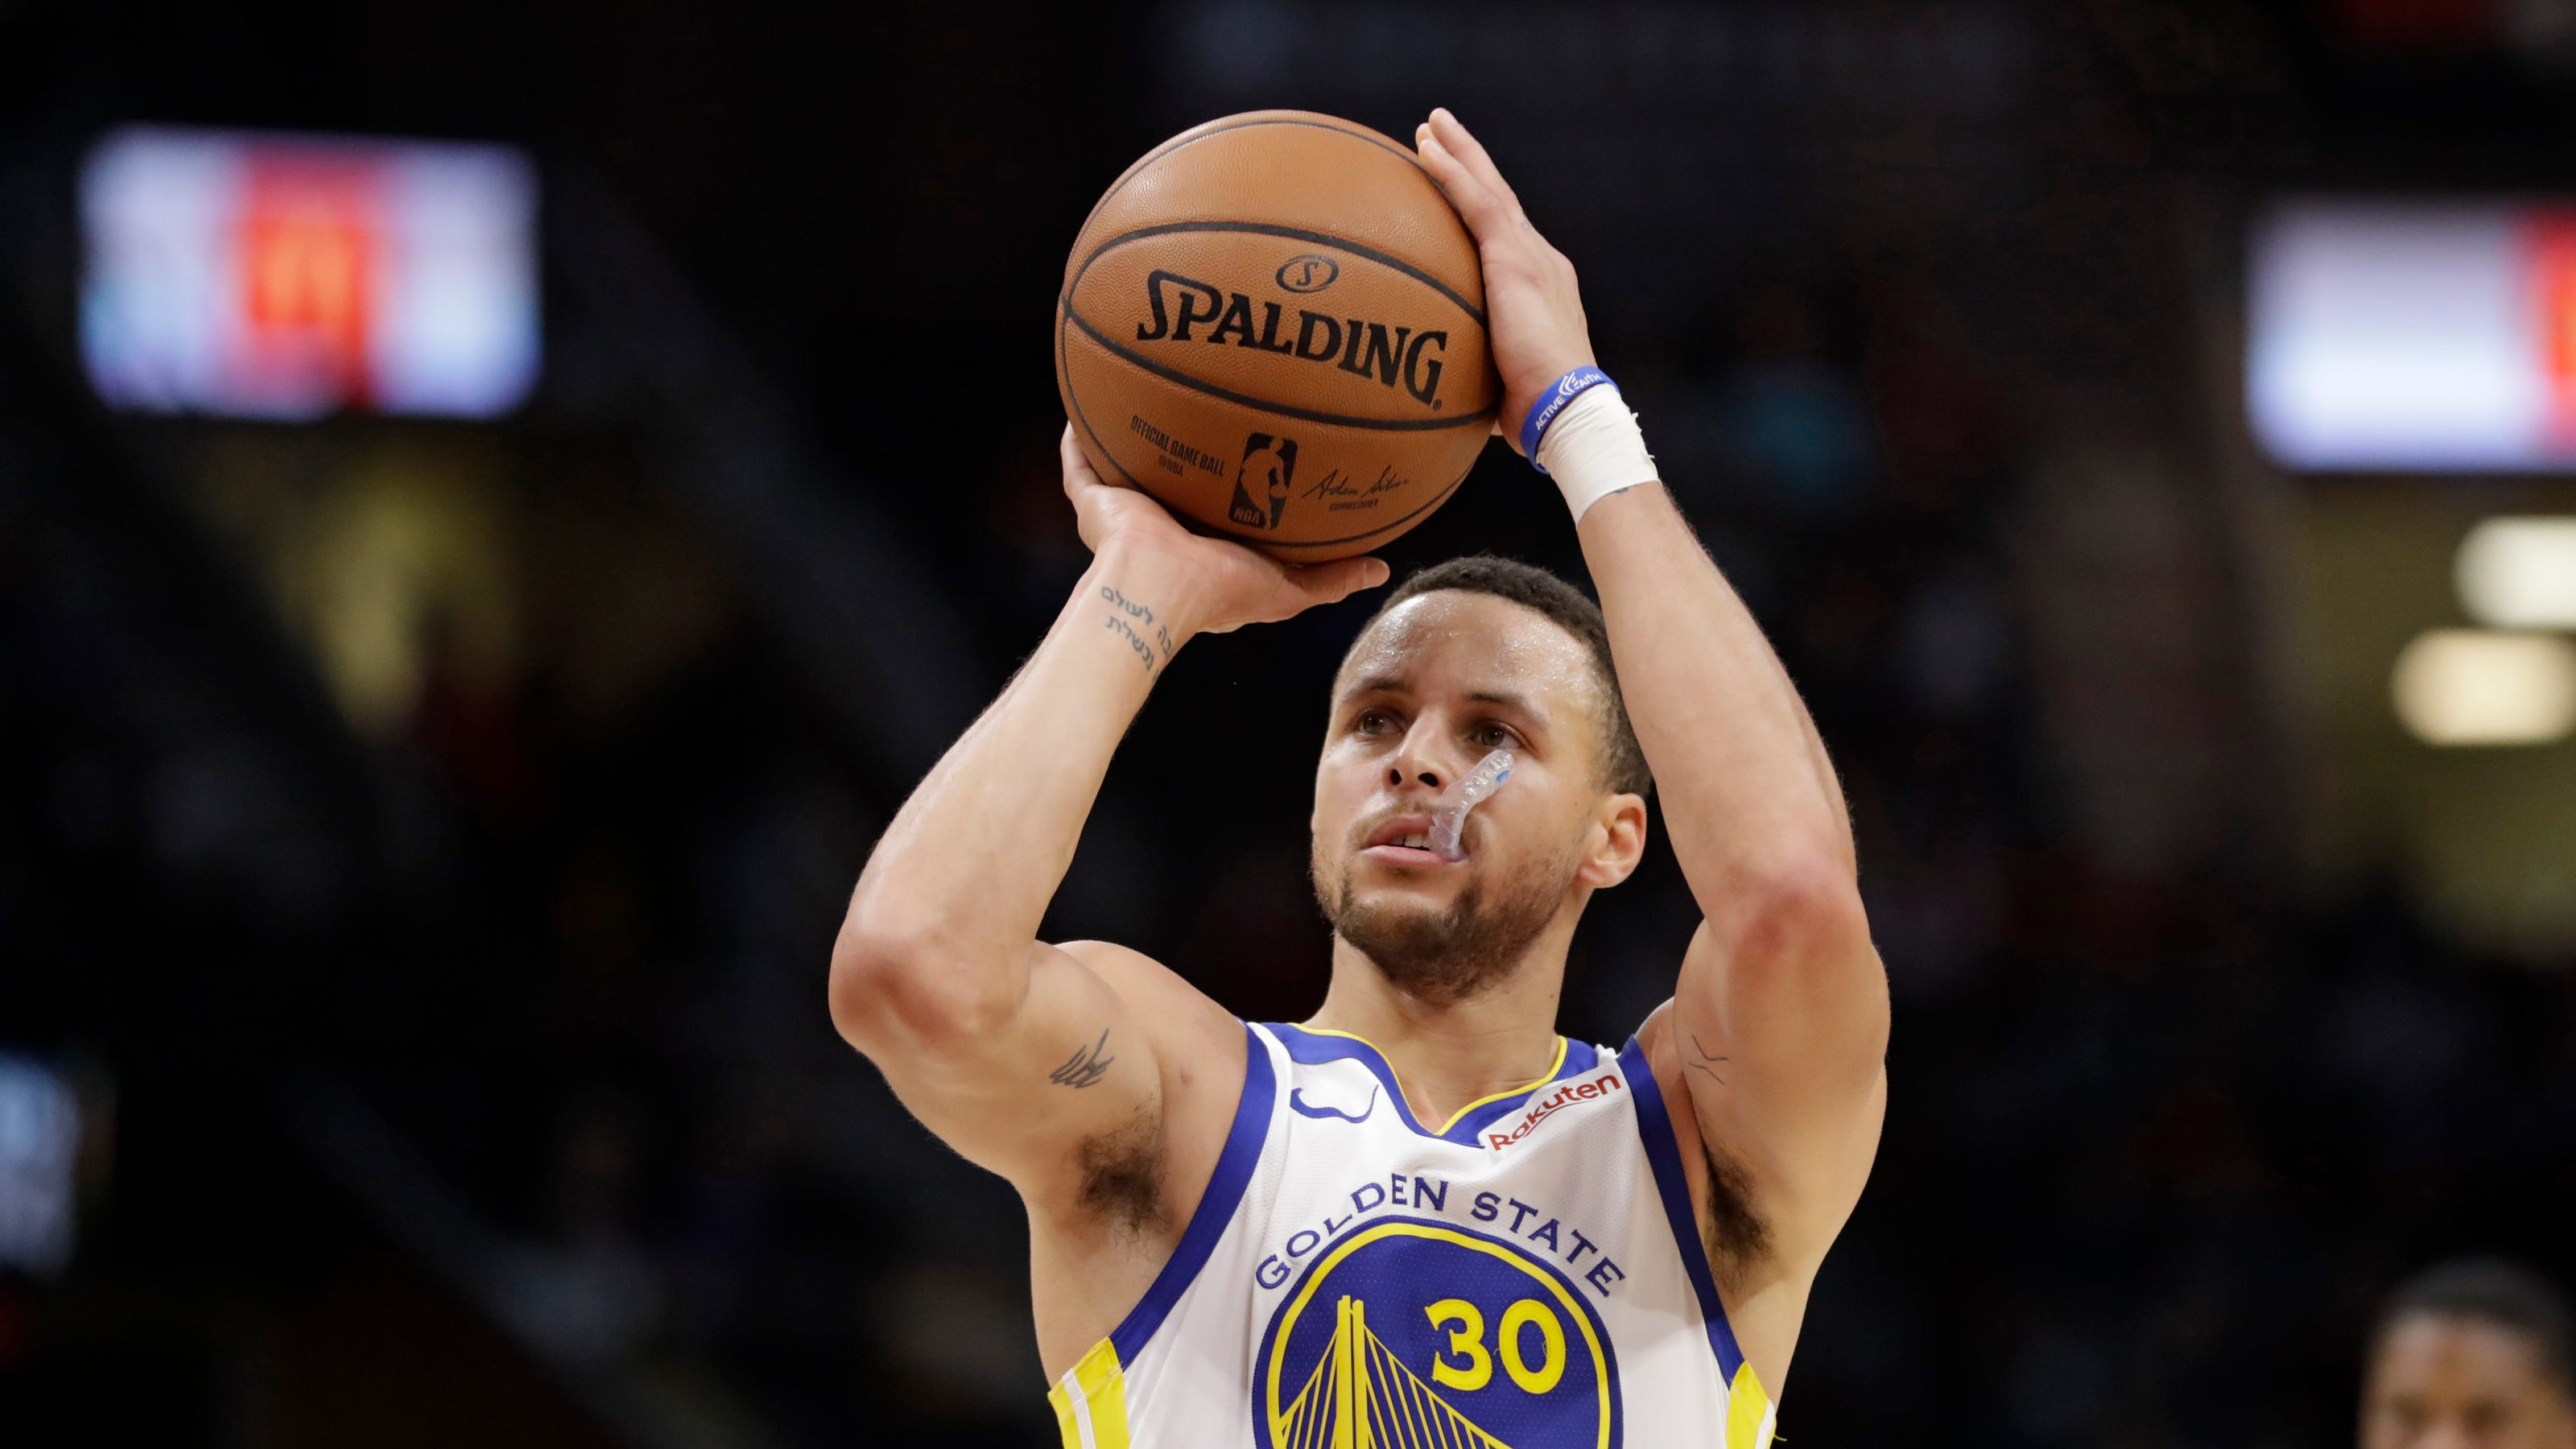 Steph Curry: Does he really believe astronauts have not ...